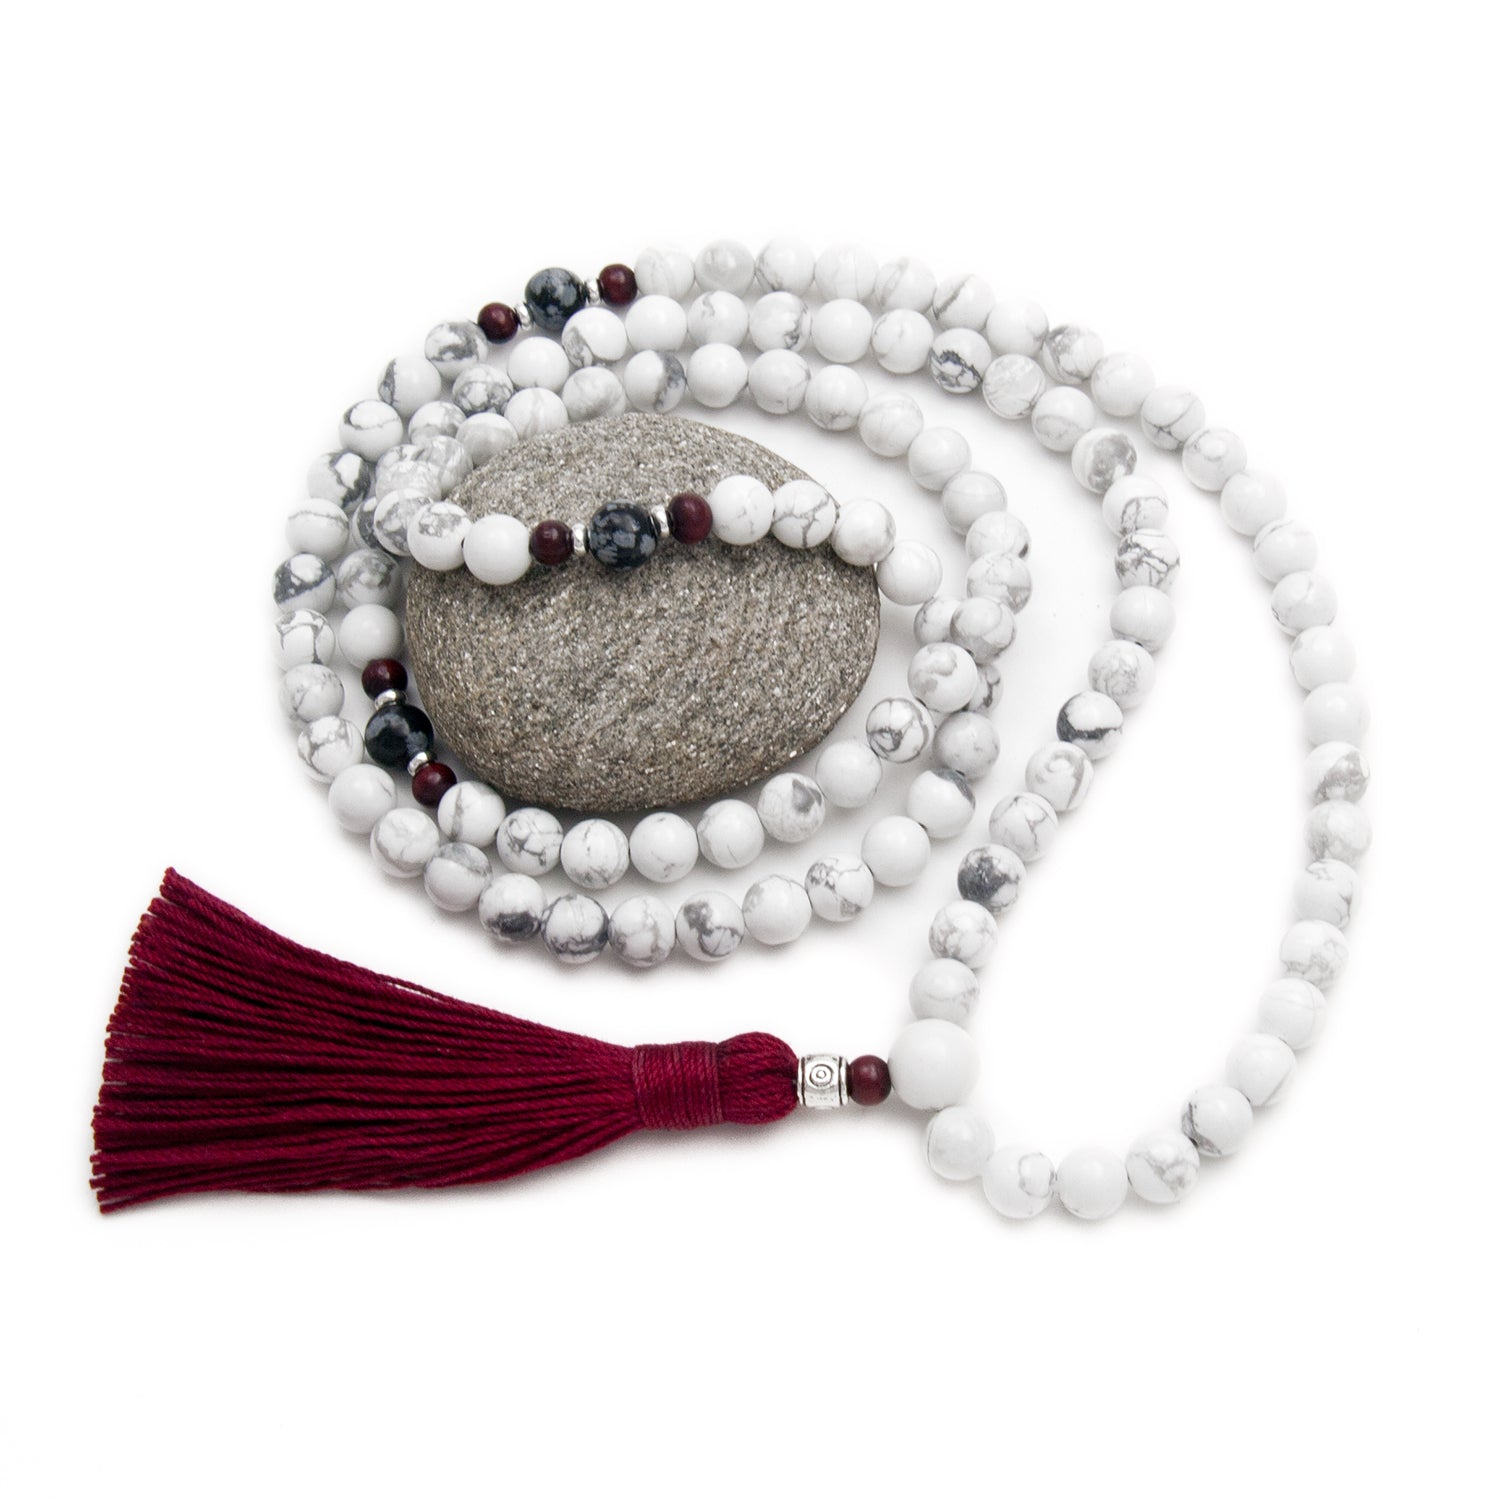 Calming Mala Necklace White Howlite with Obsidian - Red Tassel